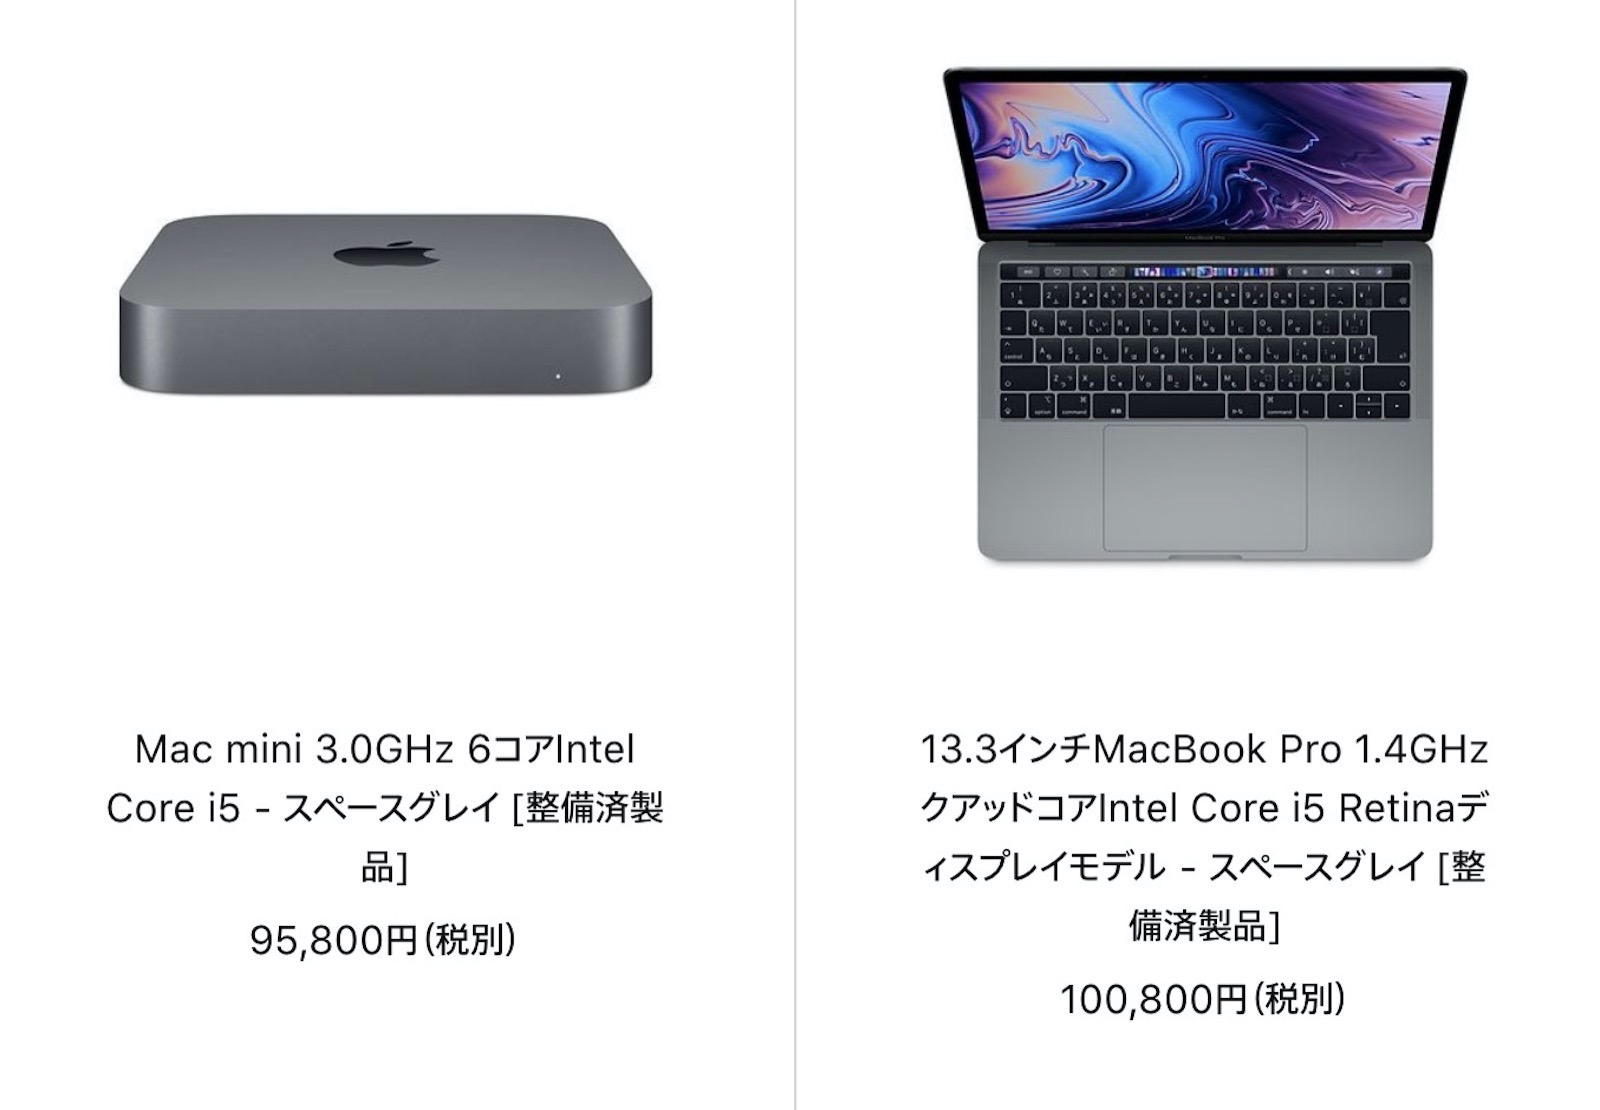 Macbook pro and mac mini refurbished